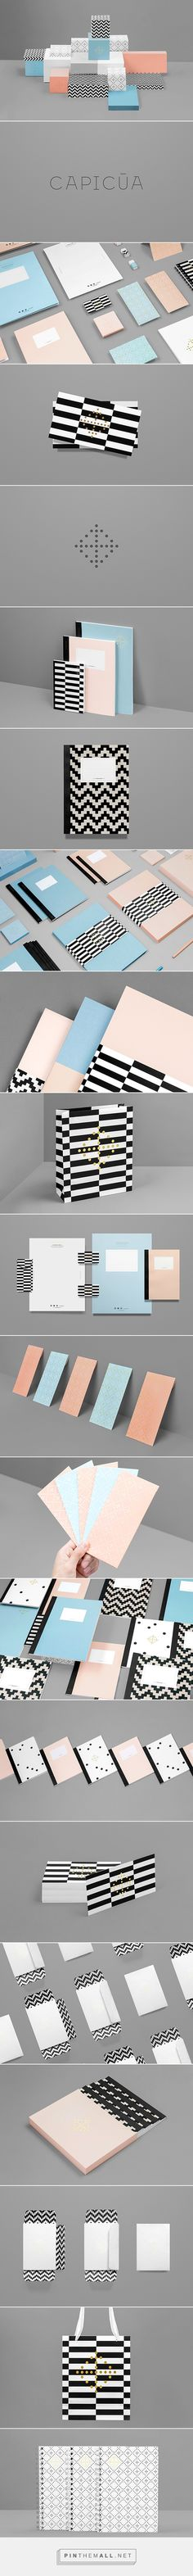 Capicúa on Behance by another one of the teams favorite packaging branding designers Anagrama curated by Packaging Diva PD although I have to admit this one hurts my eyes a little : )